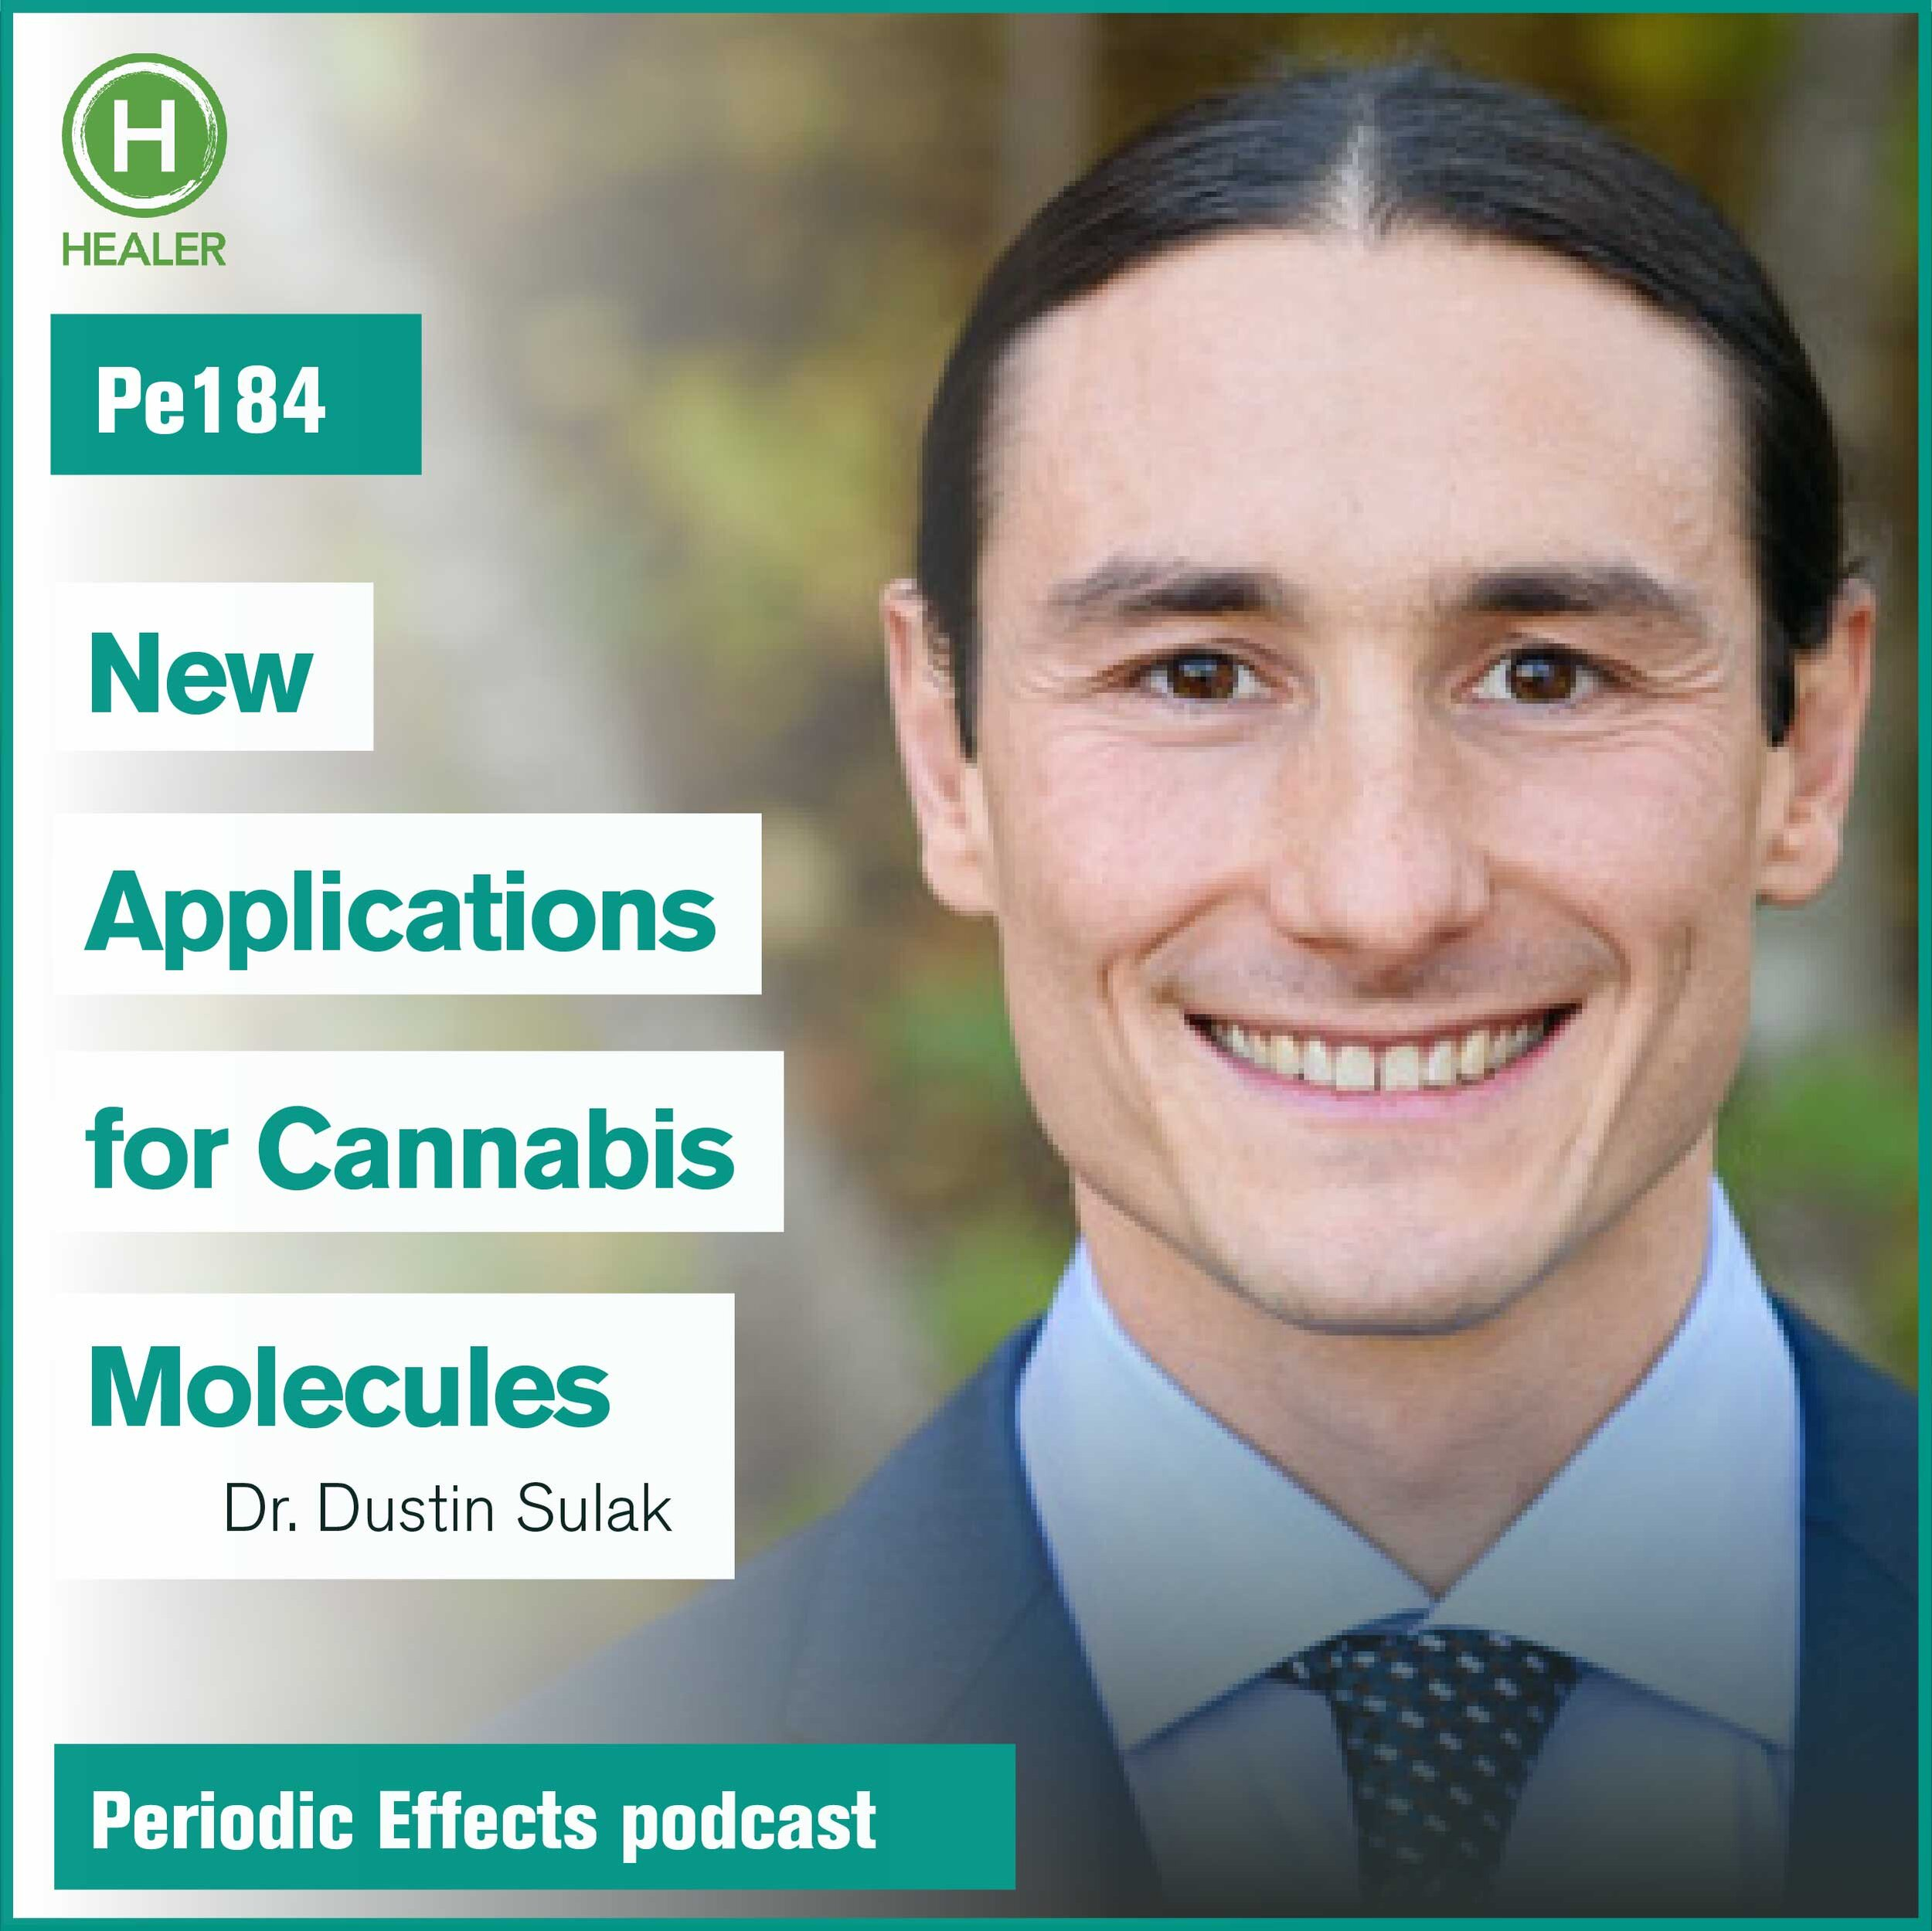 Dr. Dustin Sulak is an integrative medicine doctor using cannabis medicine, as well as other plant medicines, to help his patients find whole body relief and better quality of life. In this episode, Dr. Sulak discusses the science and medicinal applications of minor cannabinoids including THCV, CBDA, CBG, CBN, CBC and more.  Learn how a doctor is using these minor cannabinoids in full spectrum cannabis products to help his patients find symptom relief with fewer side effects than common pharmaceuticals.